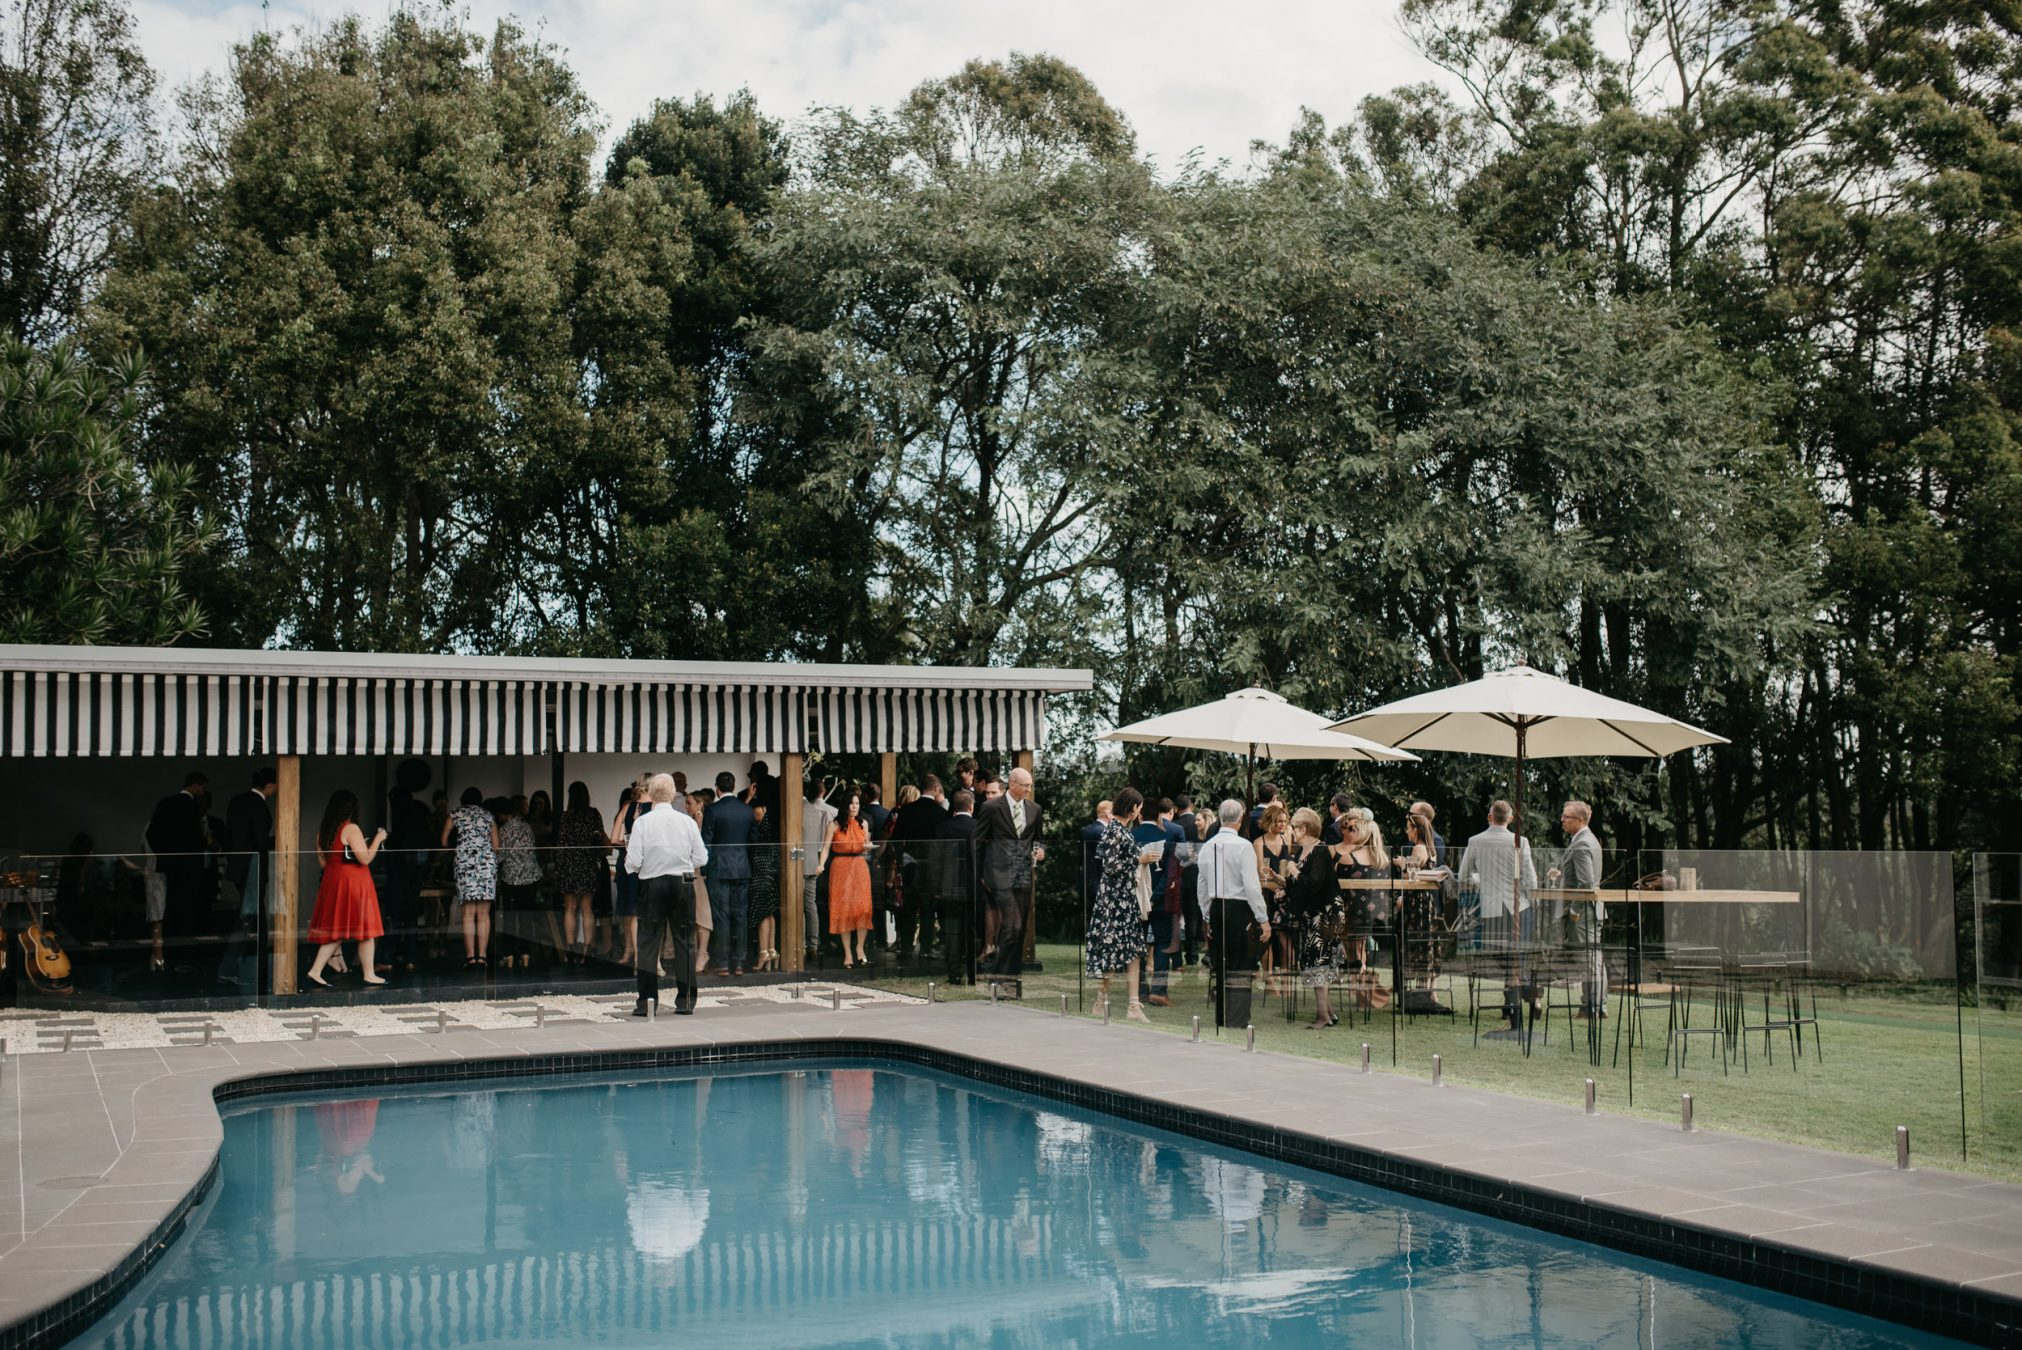 Wedding guests enjoying their time outside by the pool.